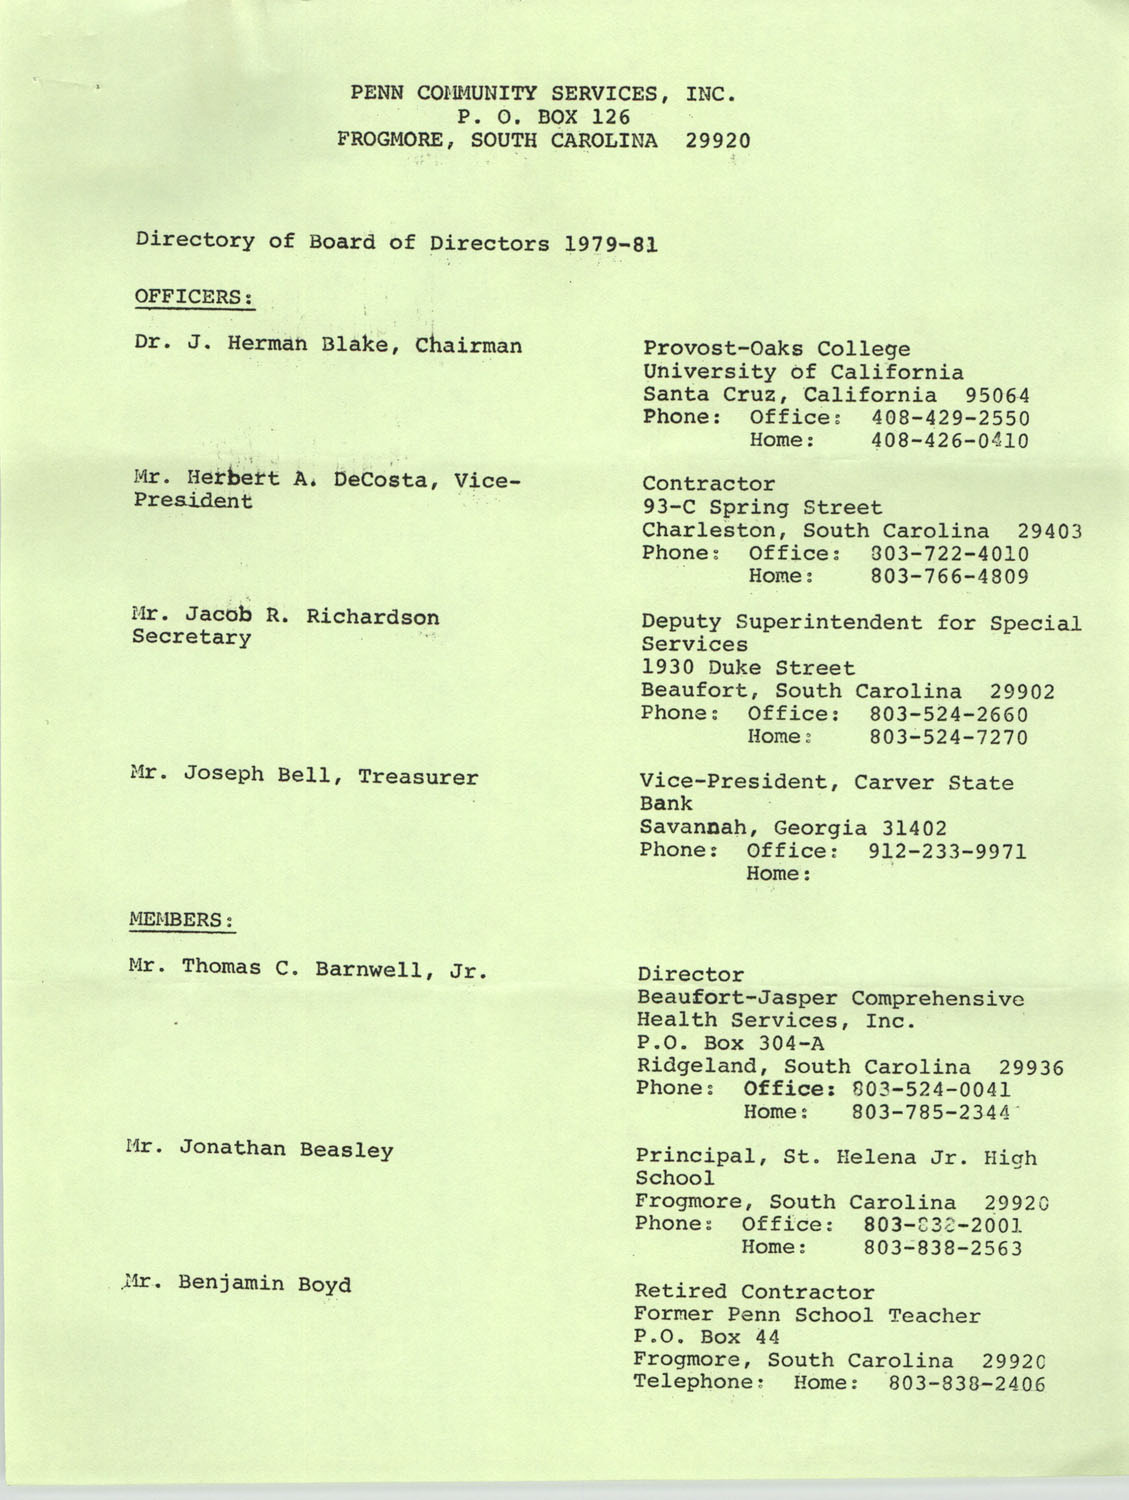 Directory of Board of Trustees, Penn Community Services, 1979-1981